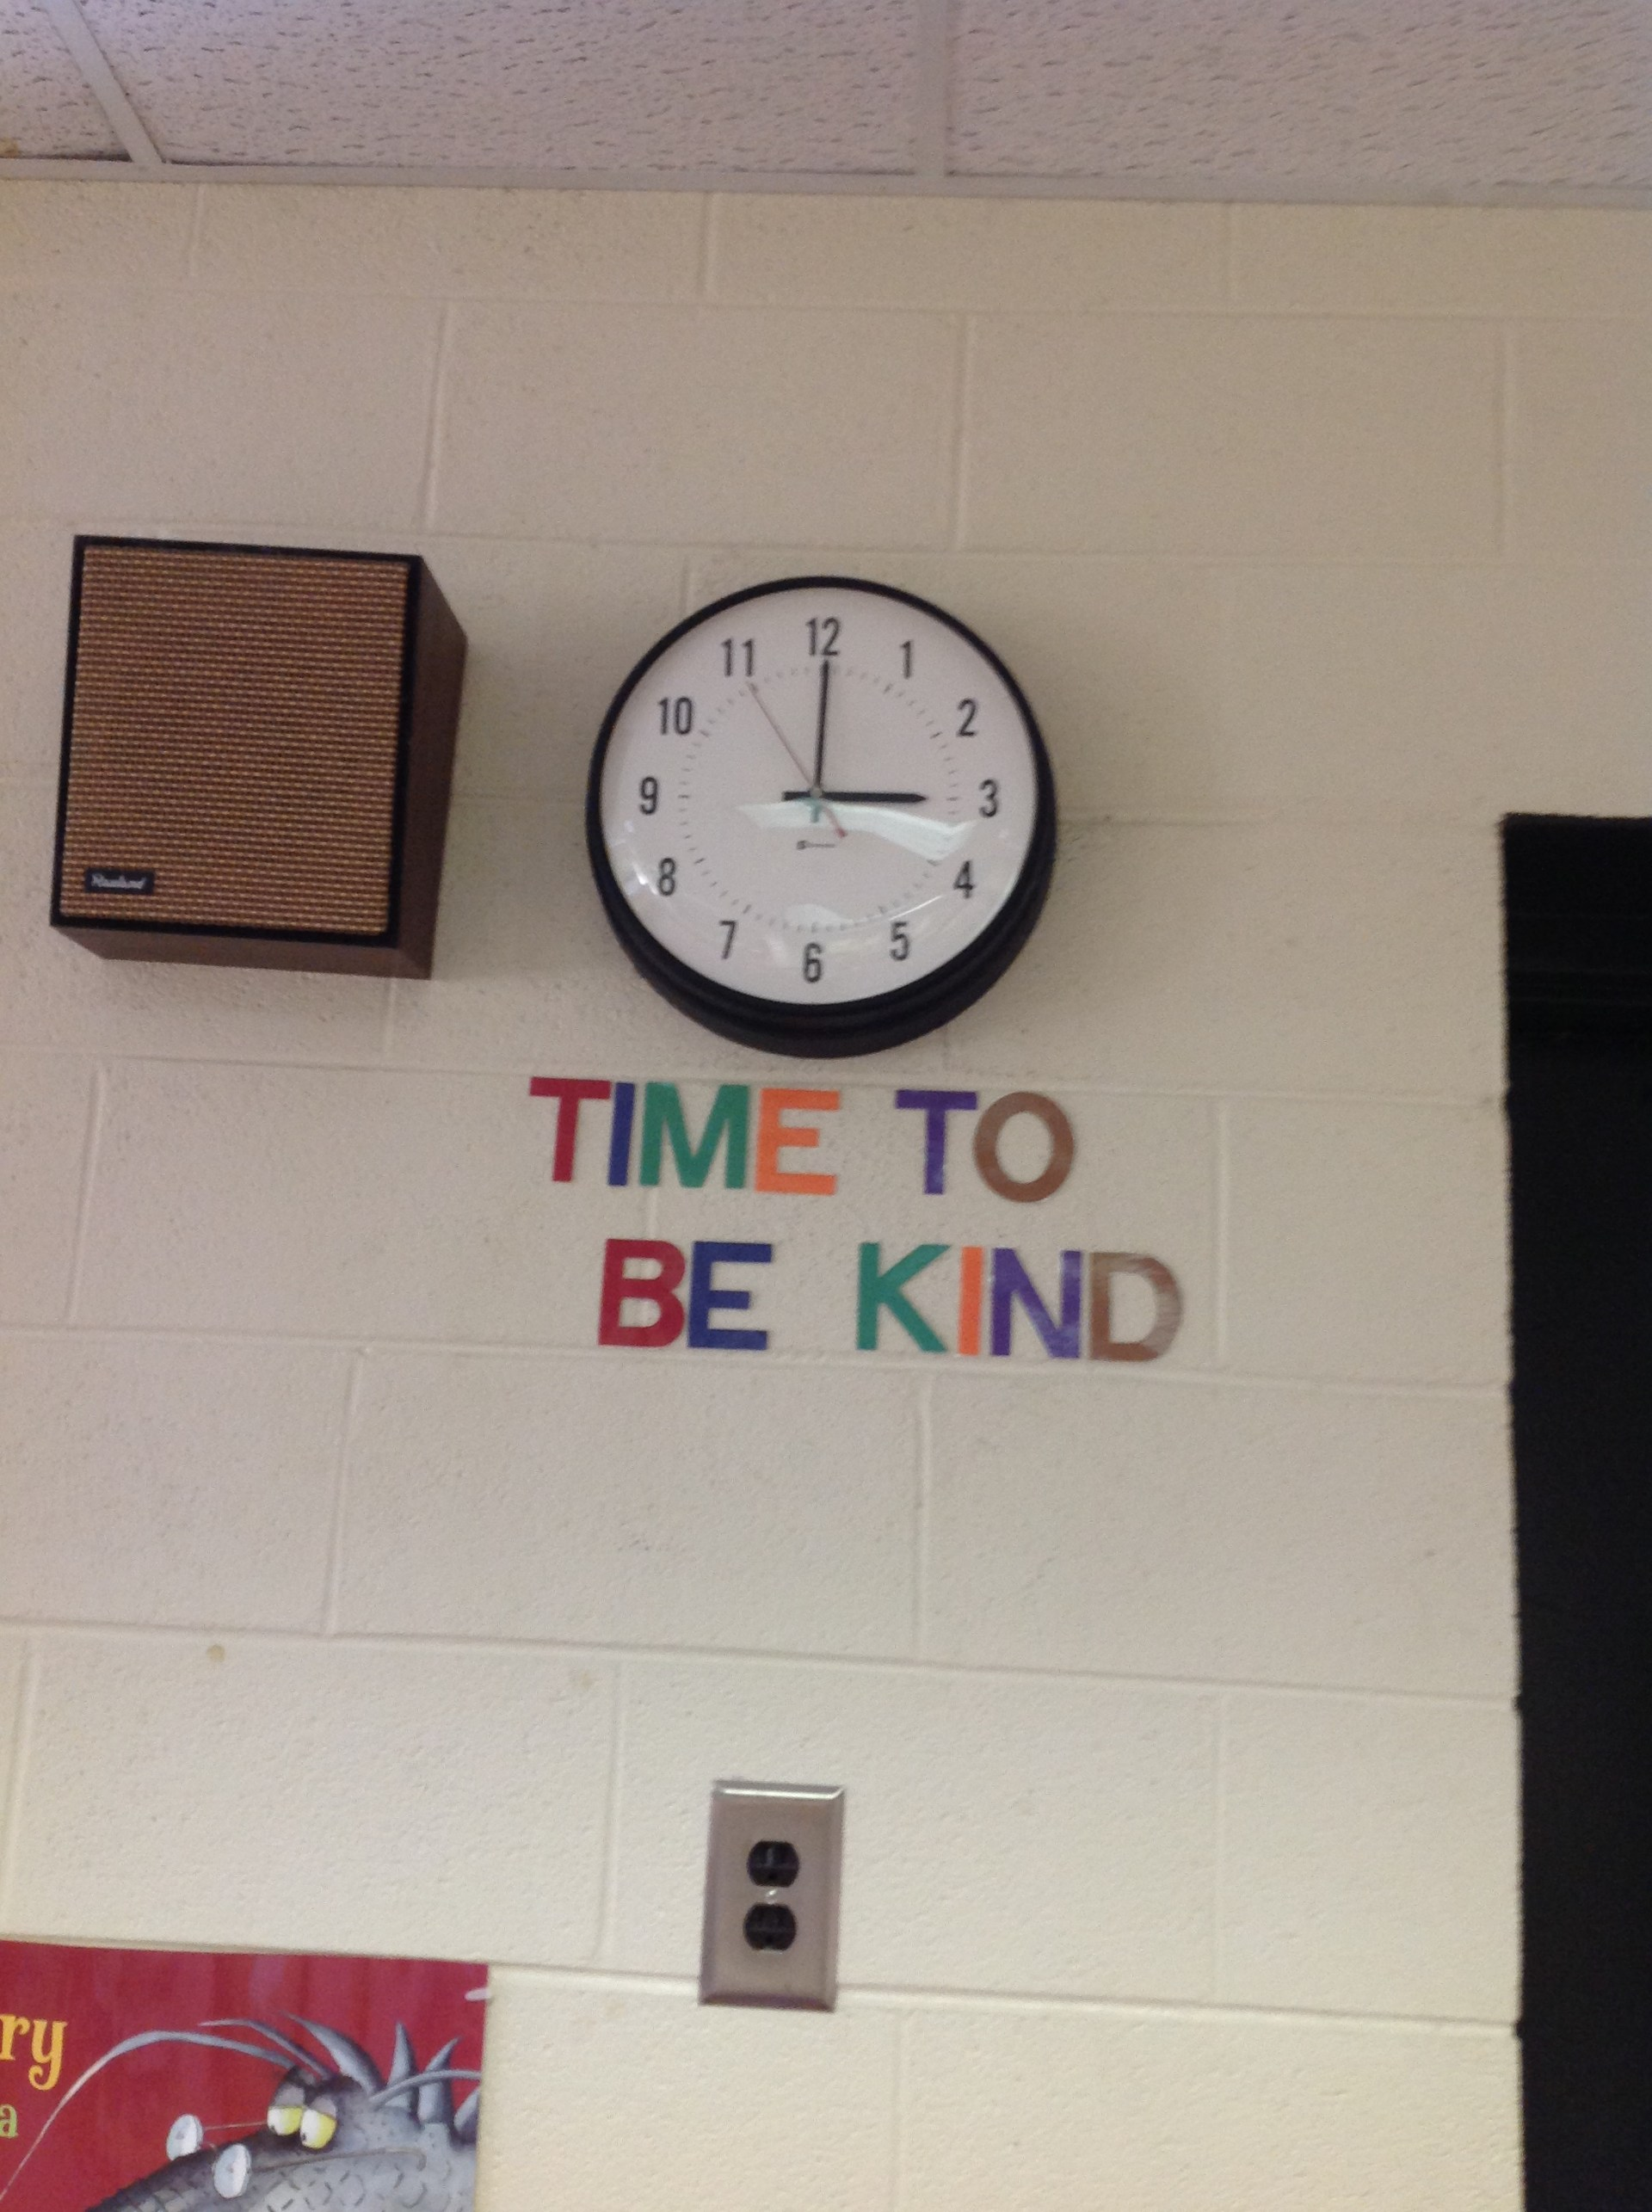 Time to Be Kind!